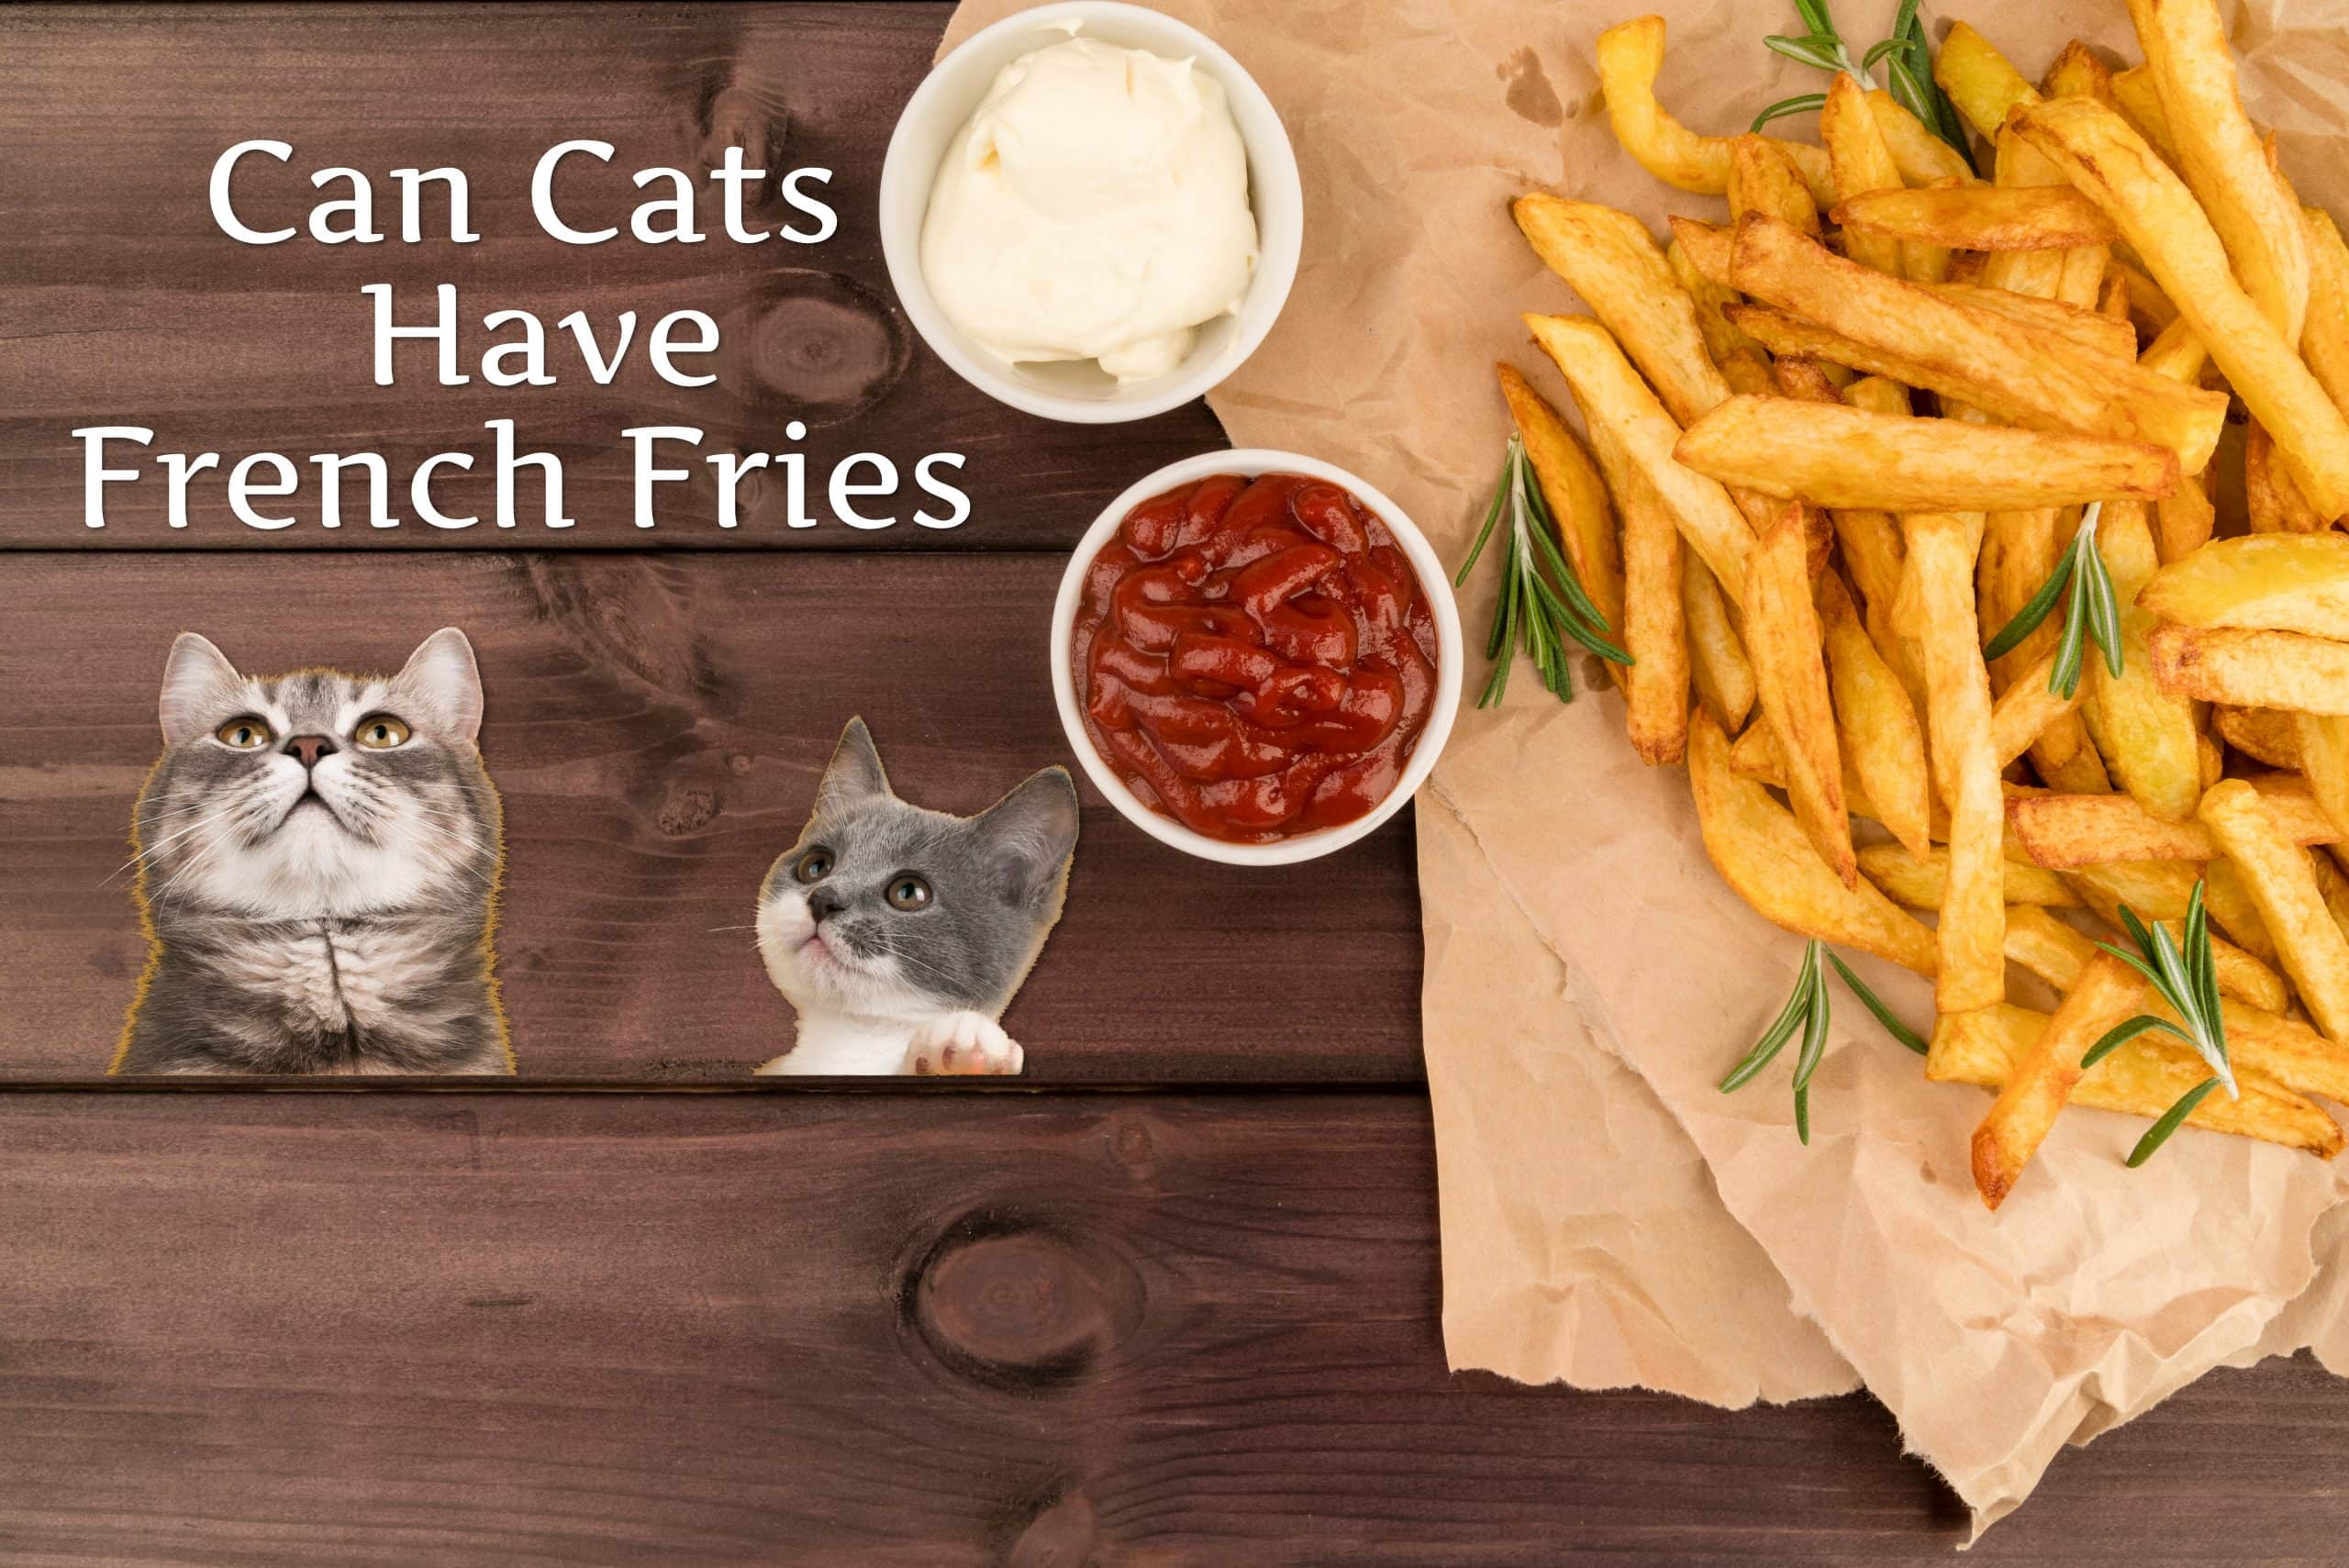 Can Cats Have French Fries